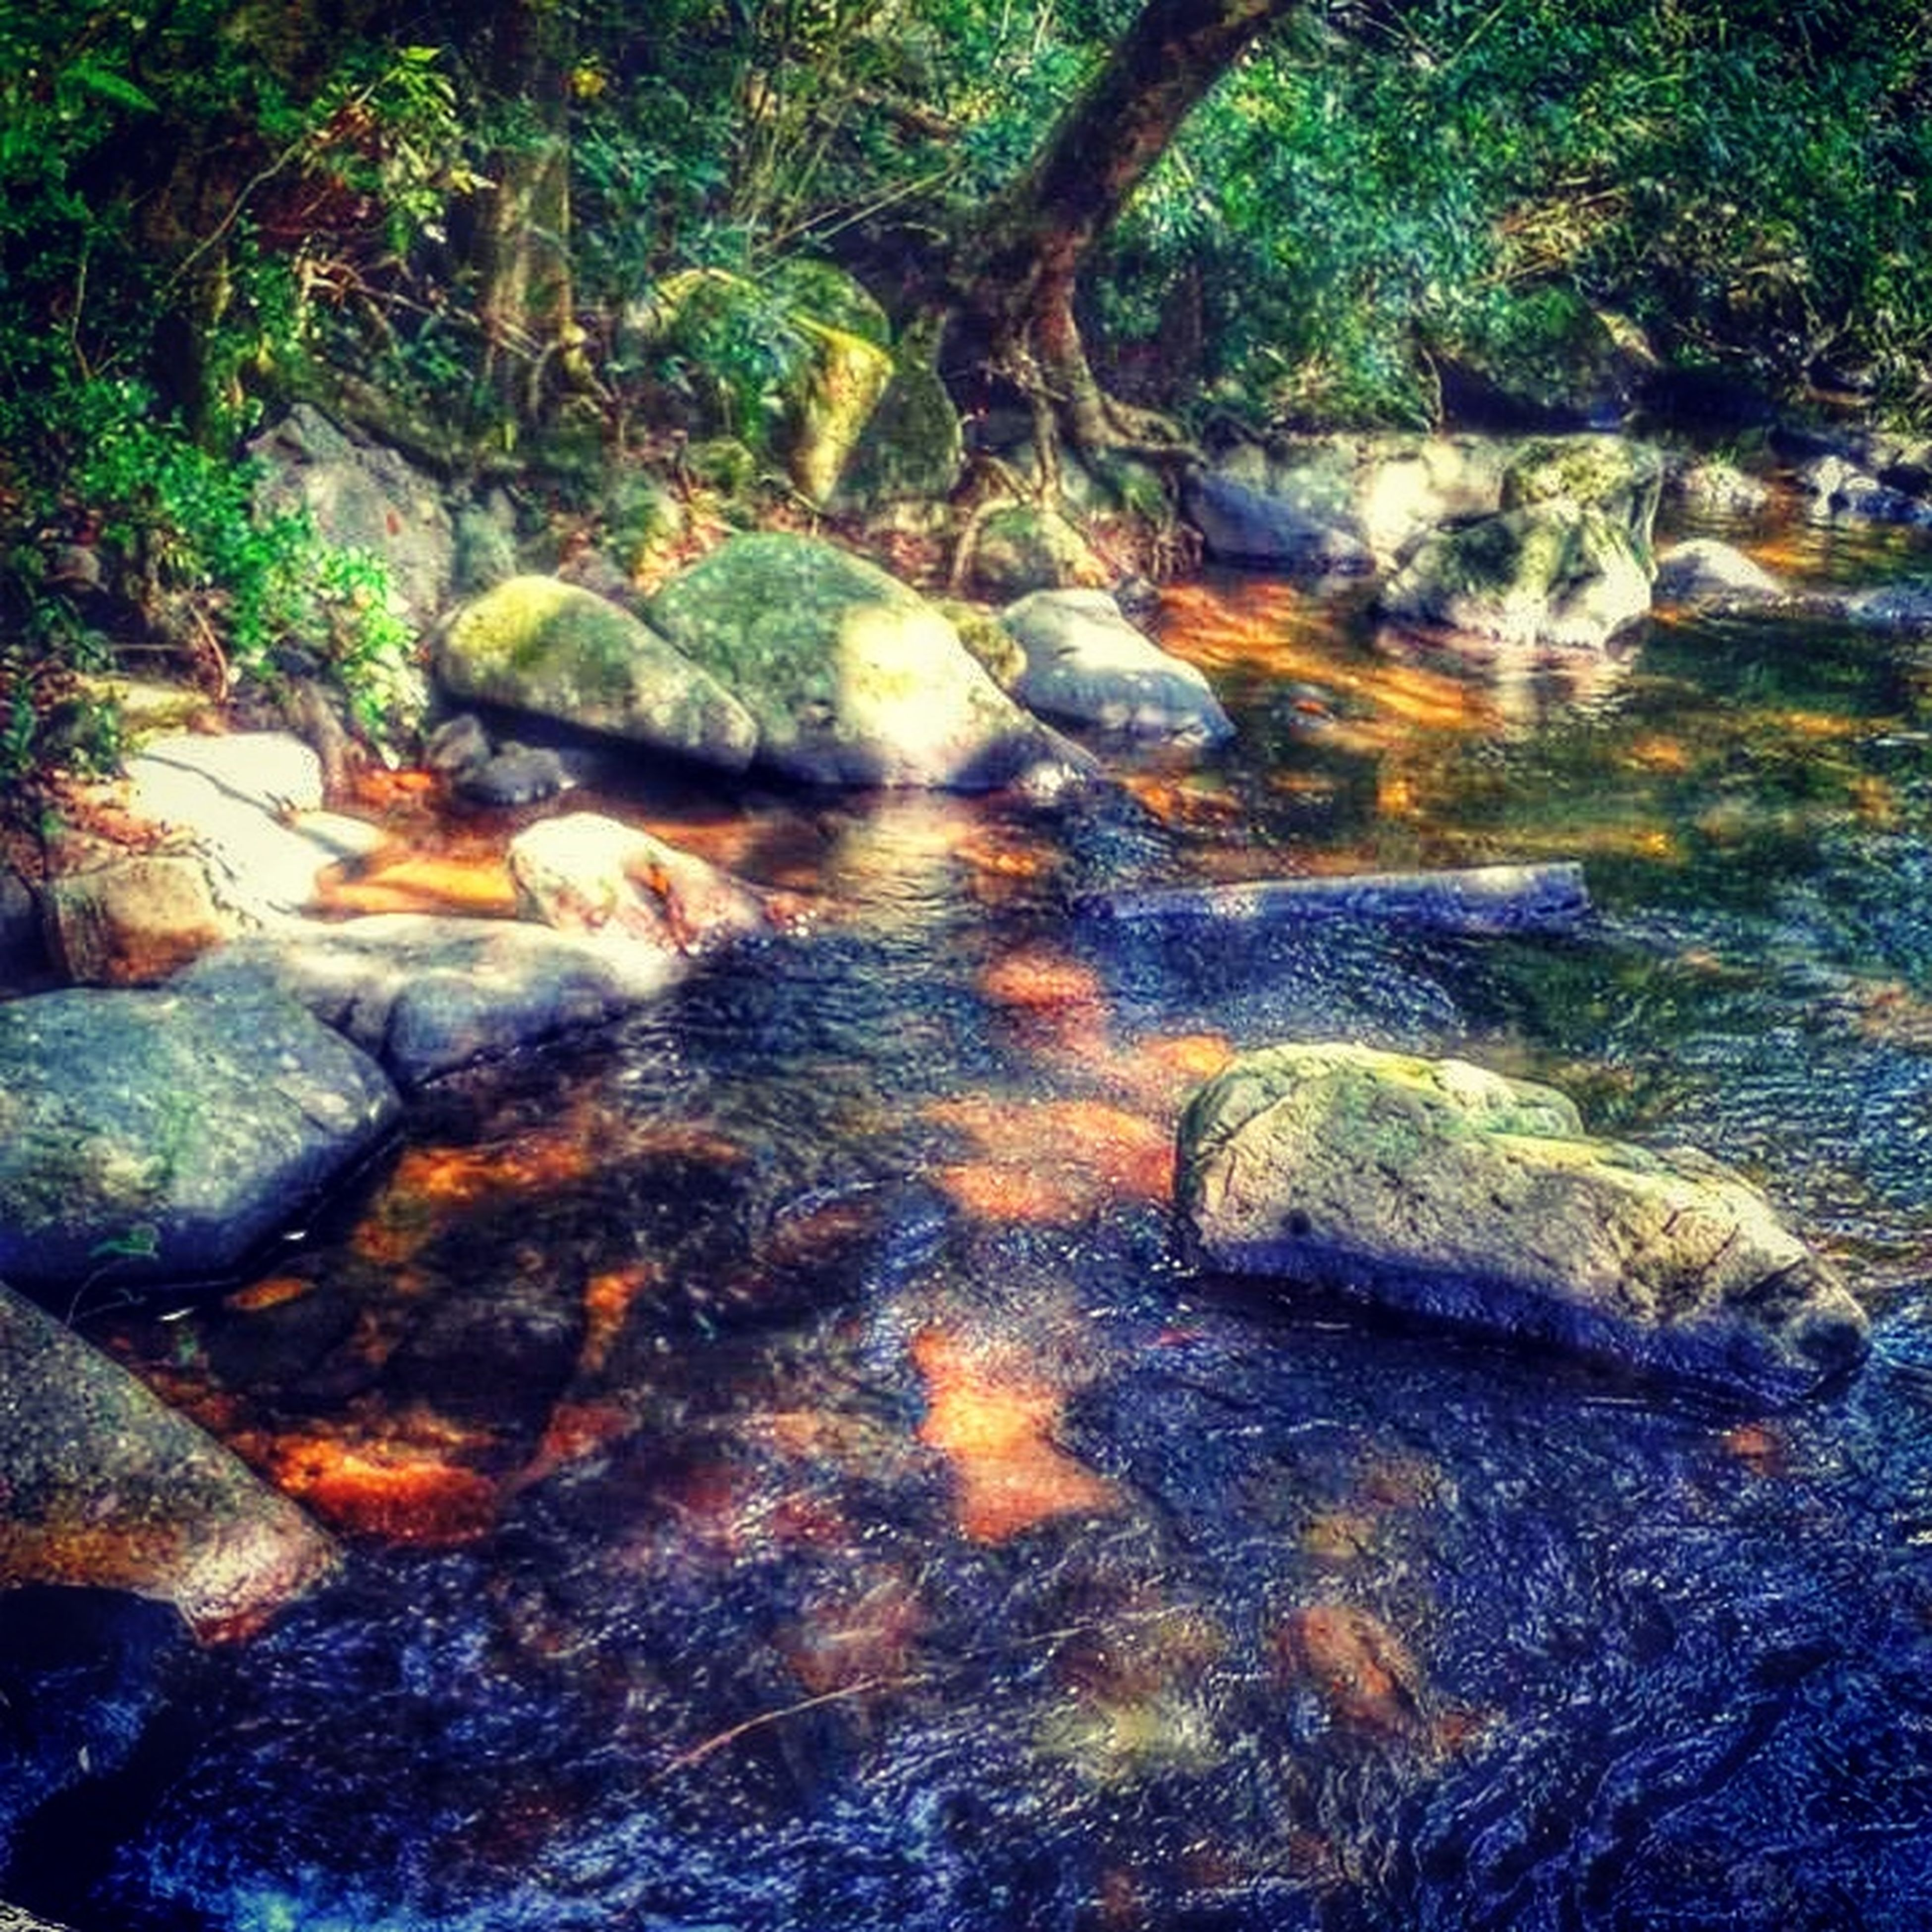 water, rock - object, nature, beauty in nature, tranquility, stream, high angle view, forest, rock, tranquil scene, tree, scenics, rock formation, river, day, outdoors, moss, no people, reflection, flowing water